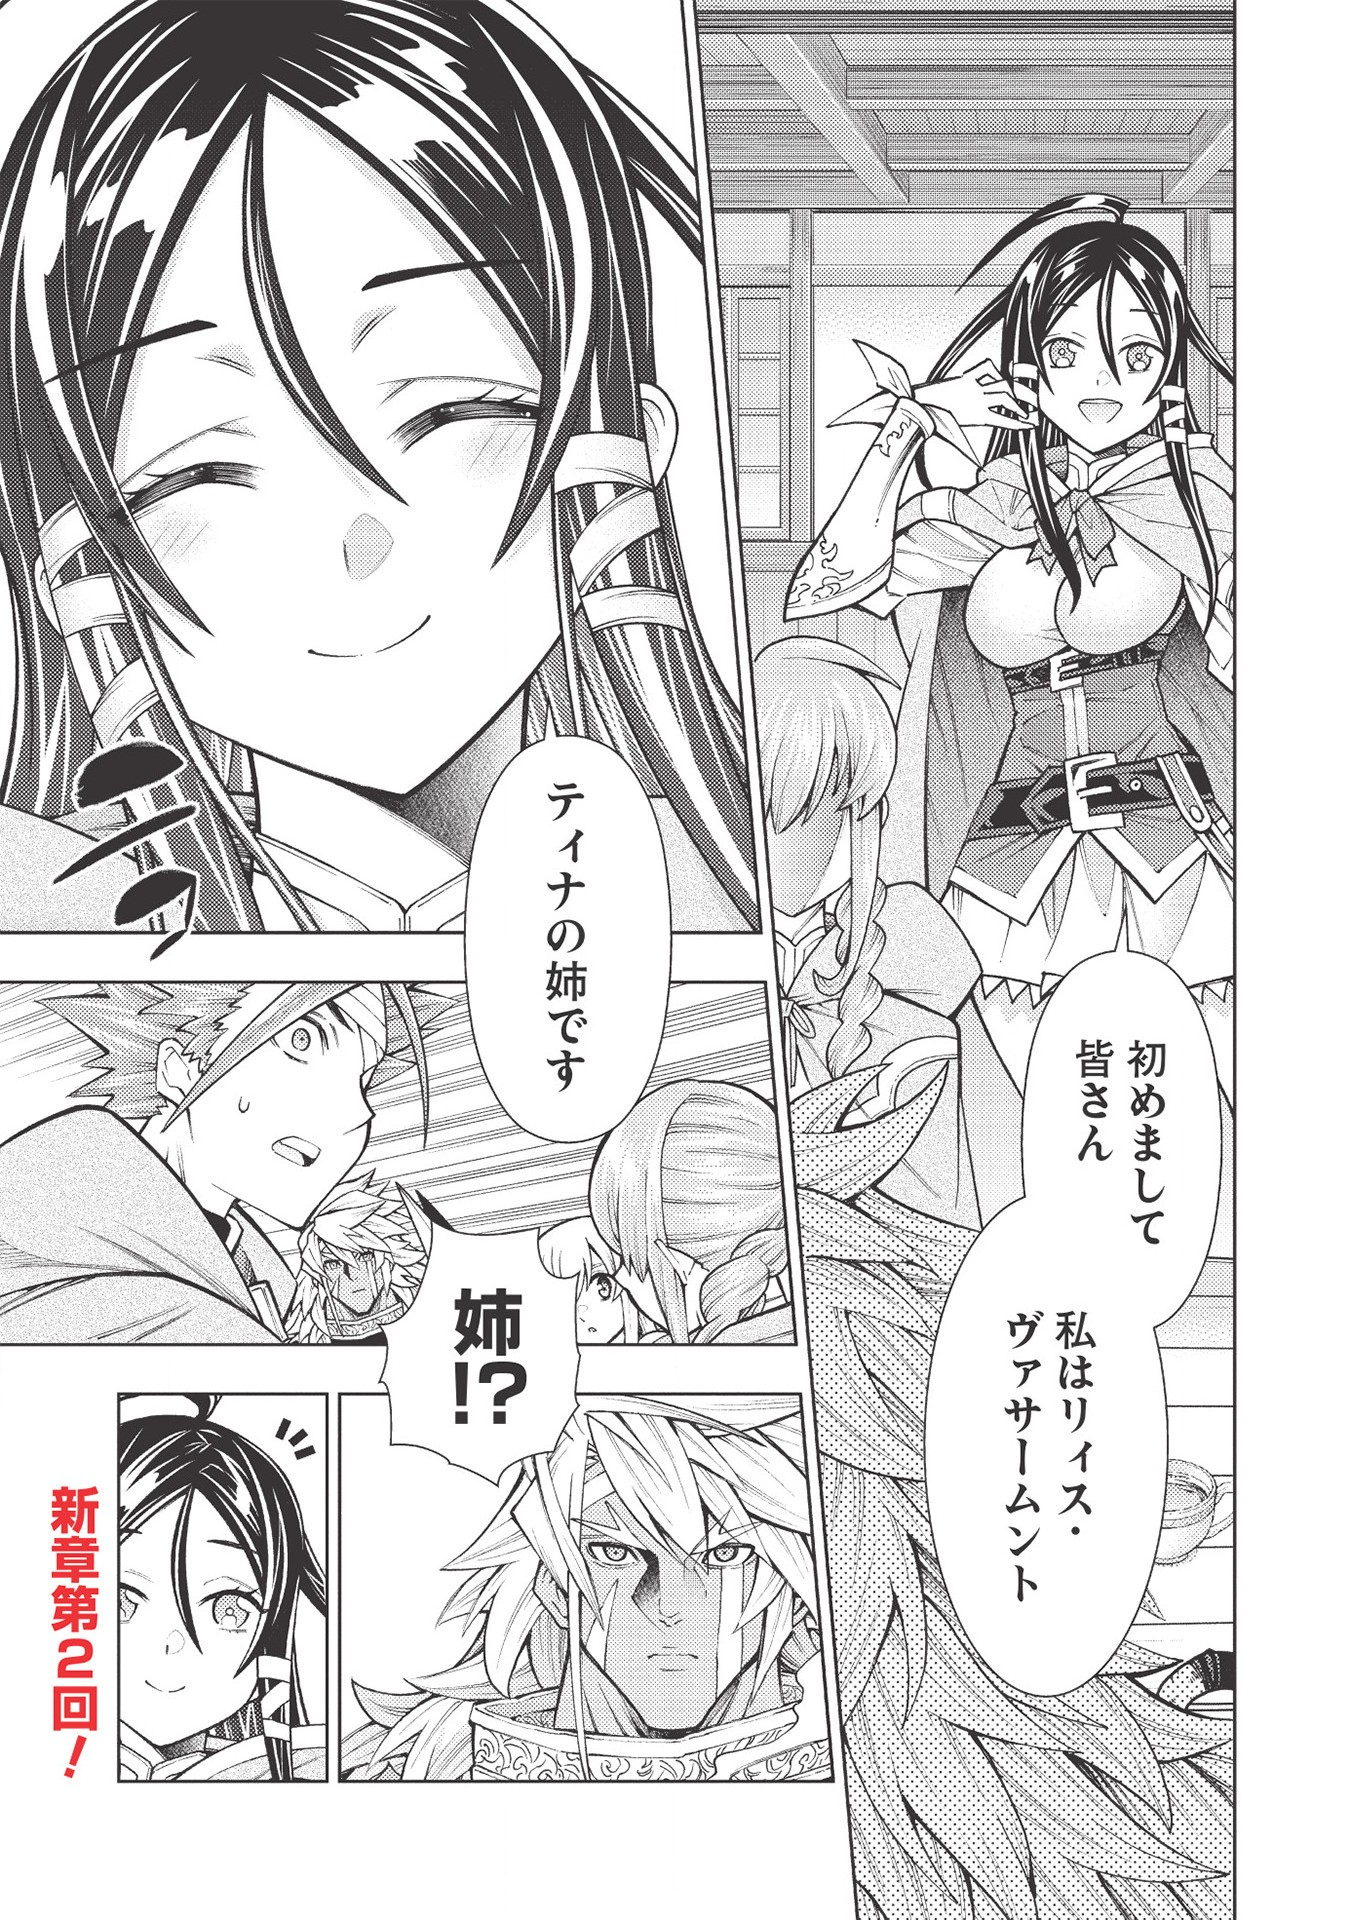 Manga Raw Johai Shogun Mata Yabureru Chapter 24